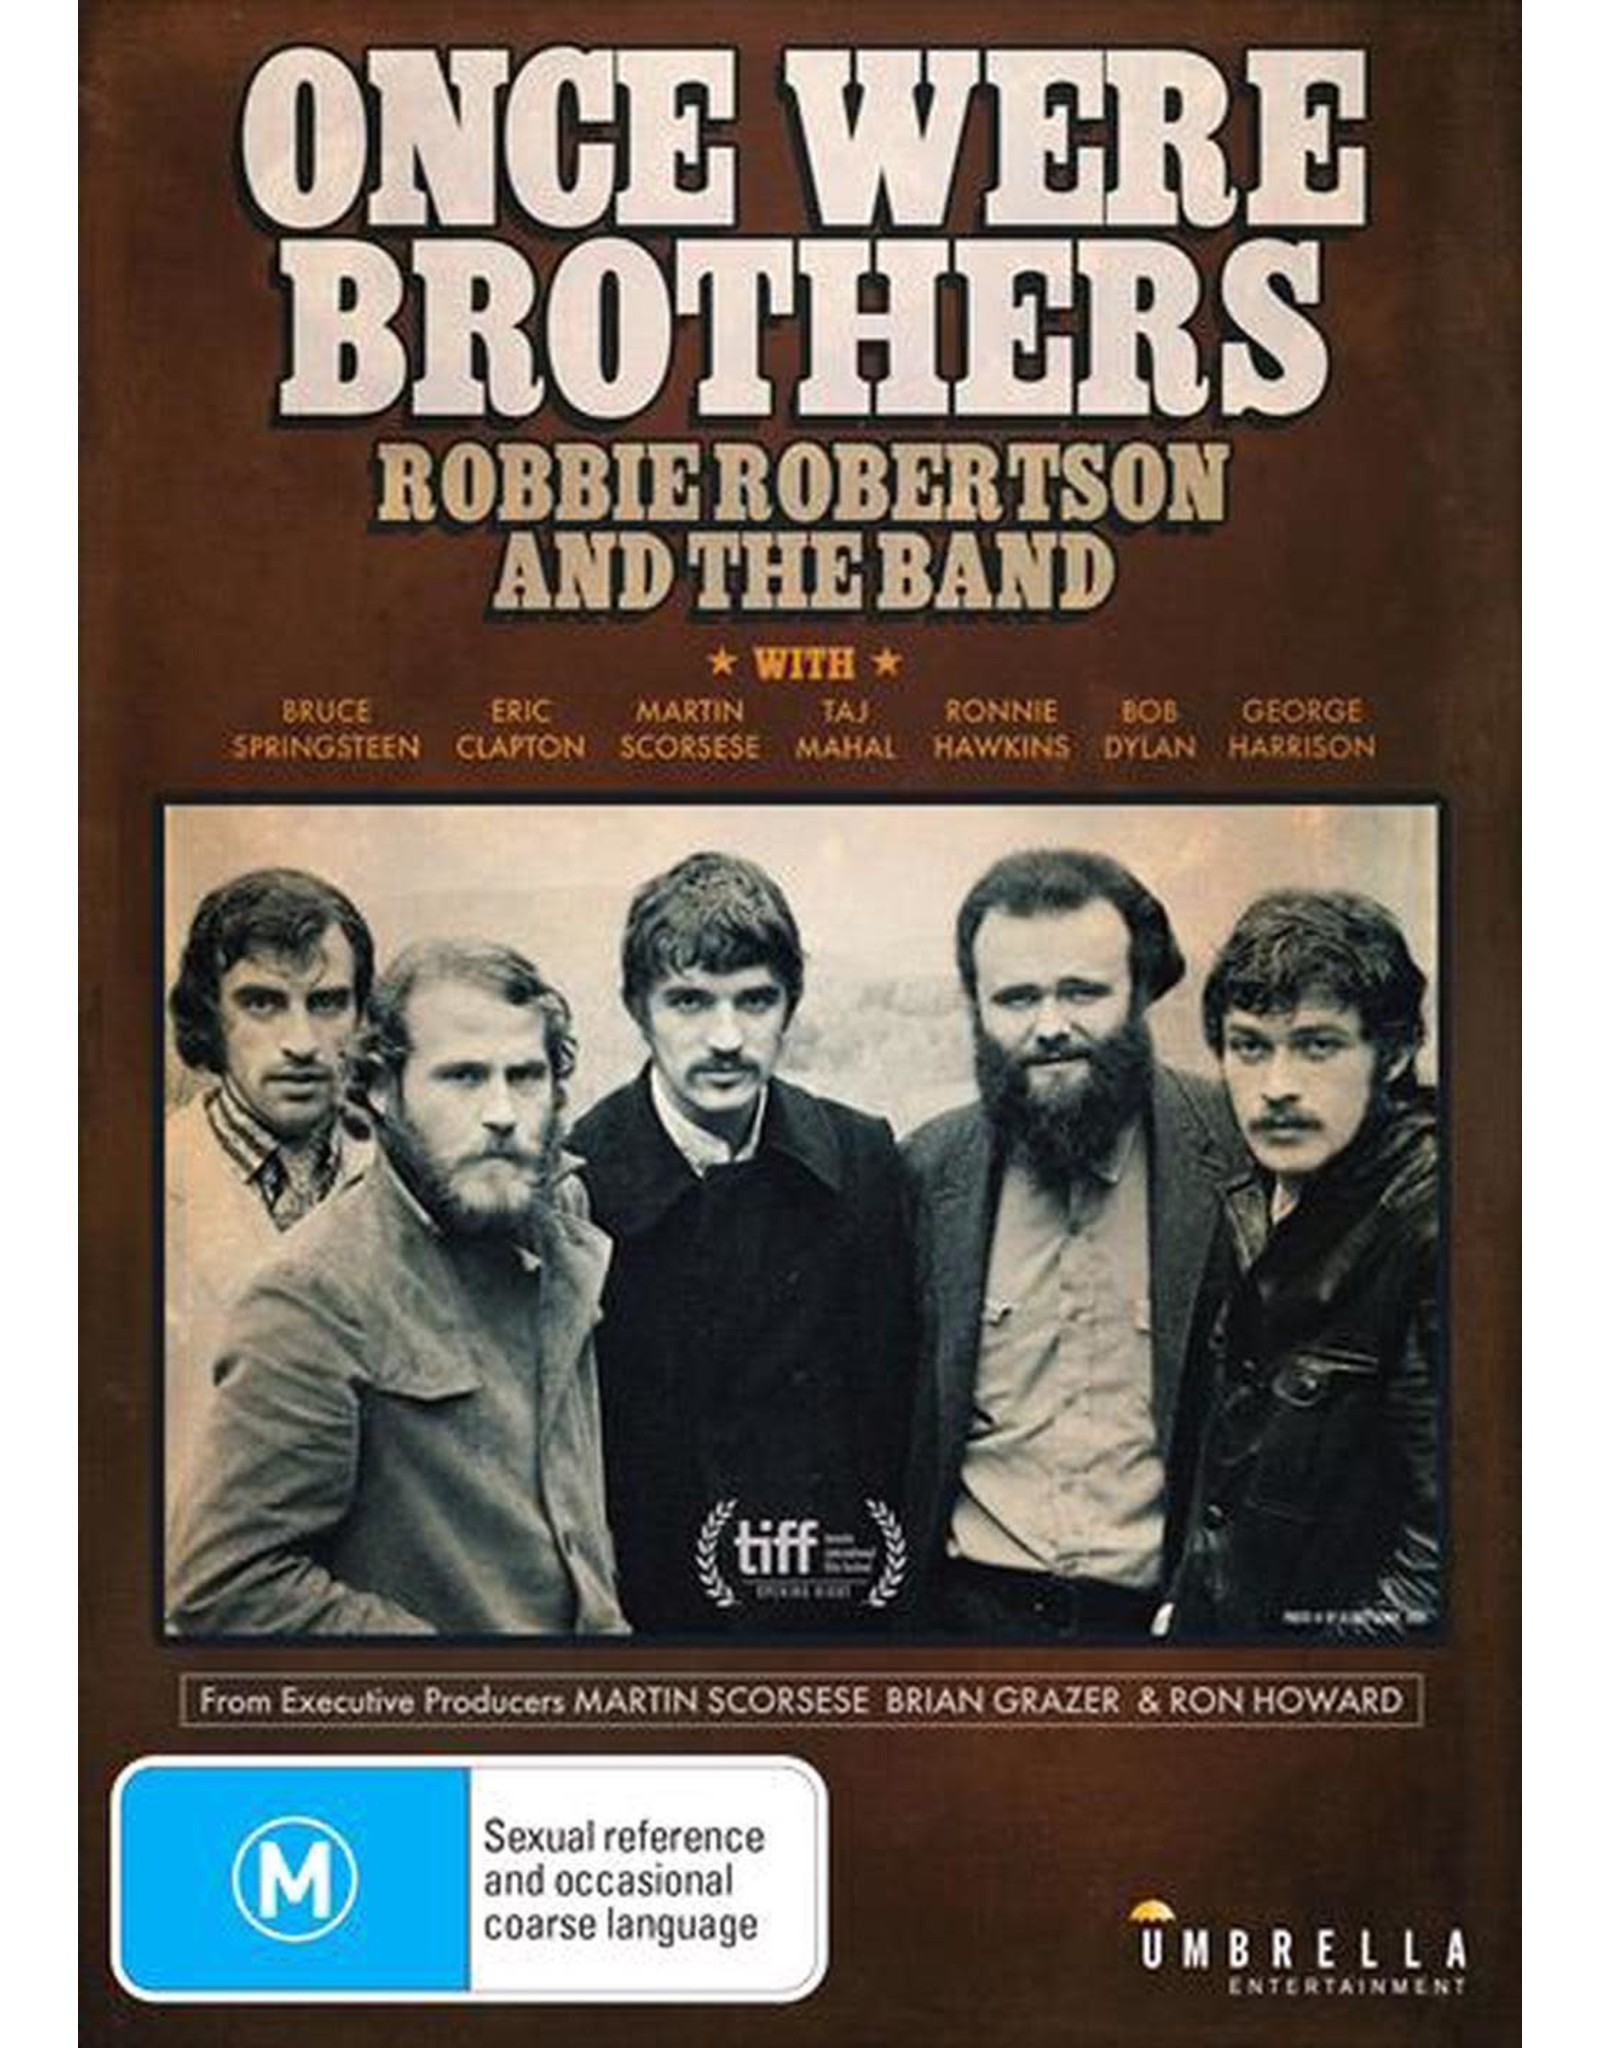 Robbie Robertson: Once We Were Brothers DVD